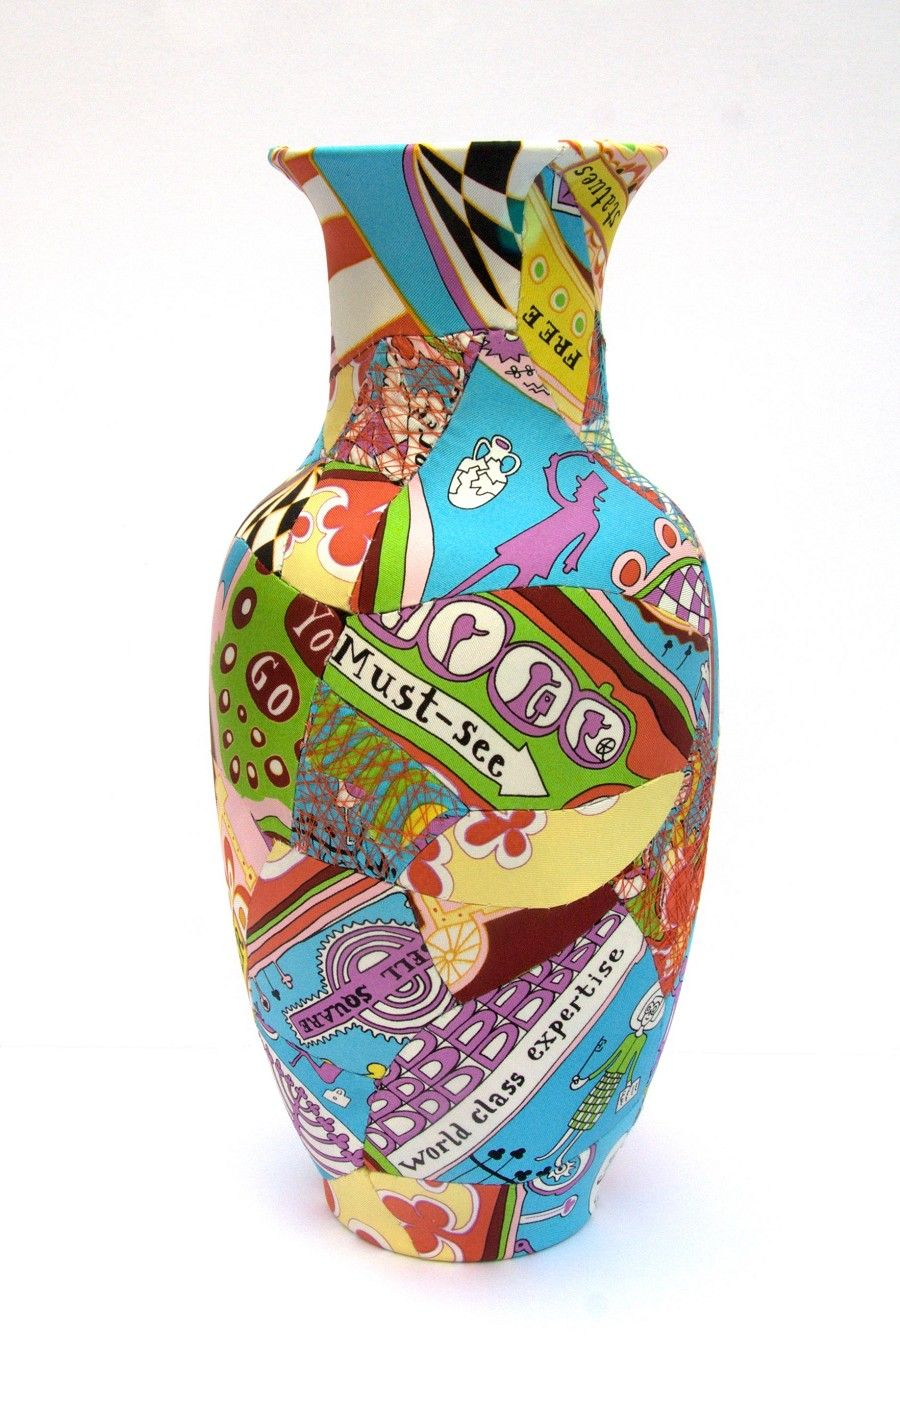 Grayson perry ceramics google search pinterest google grayson perry ceramics google search reviewsmspy